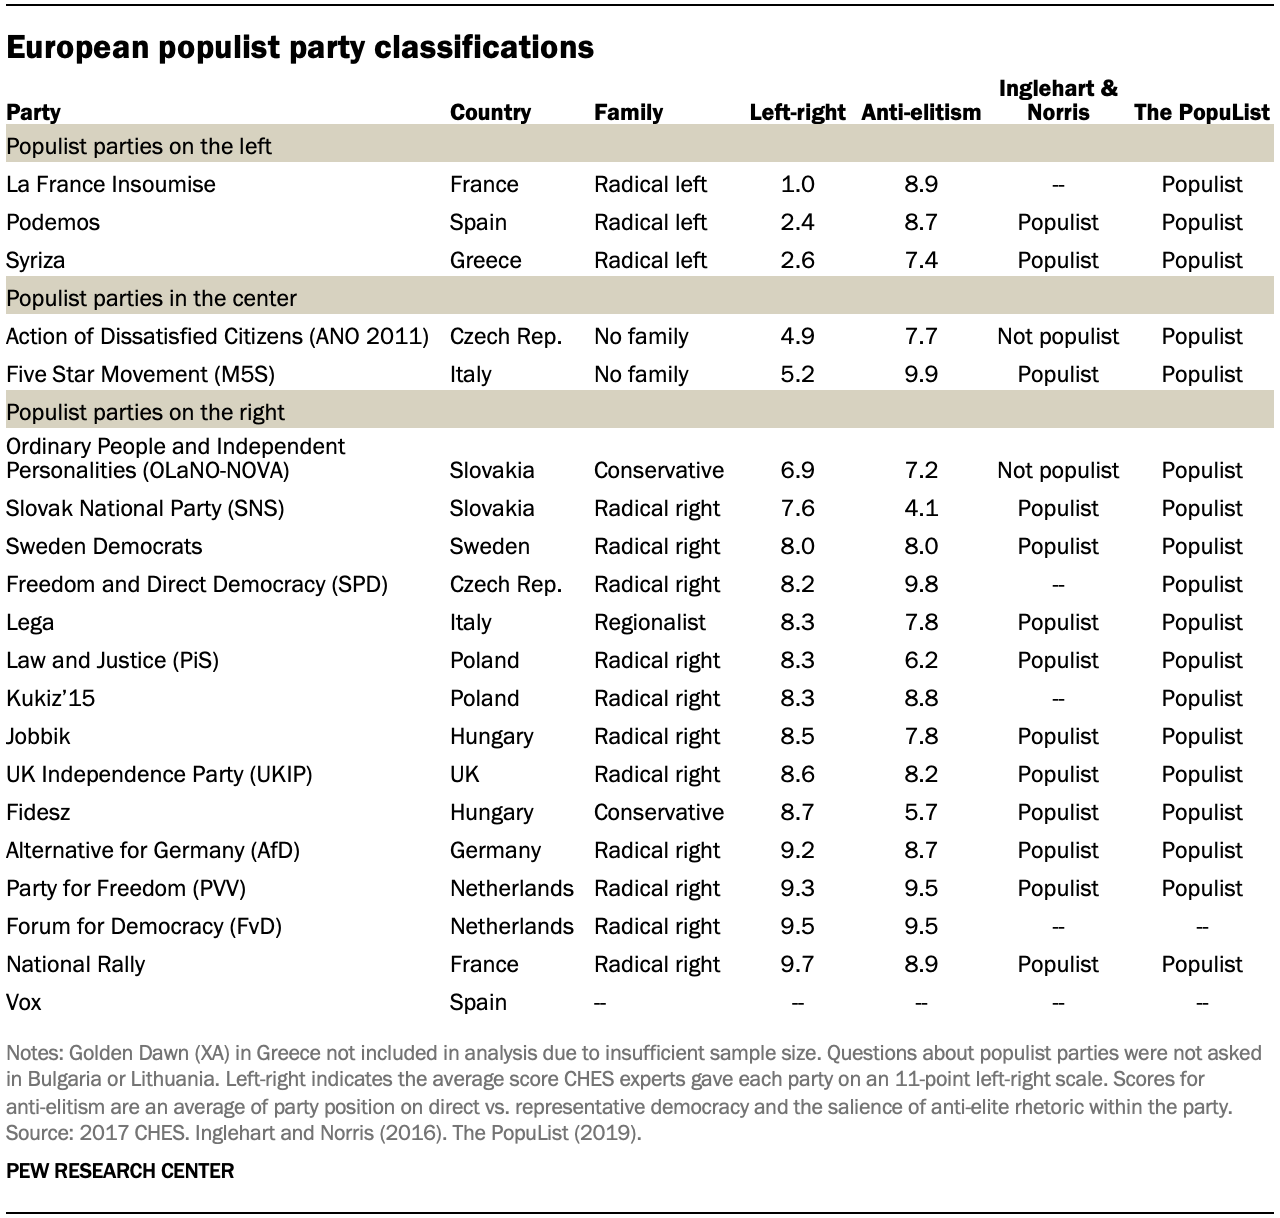 A table showing European populist party classifications